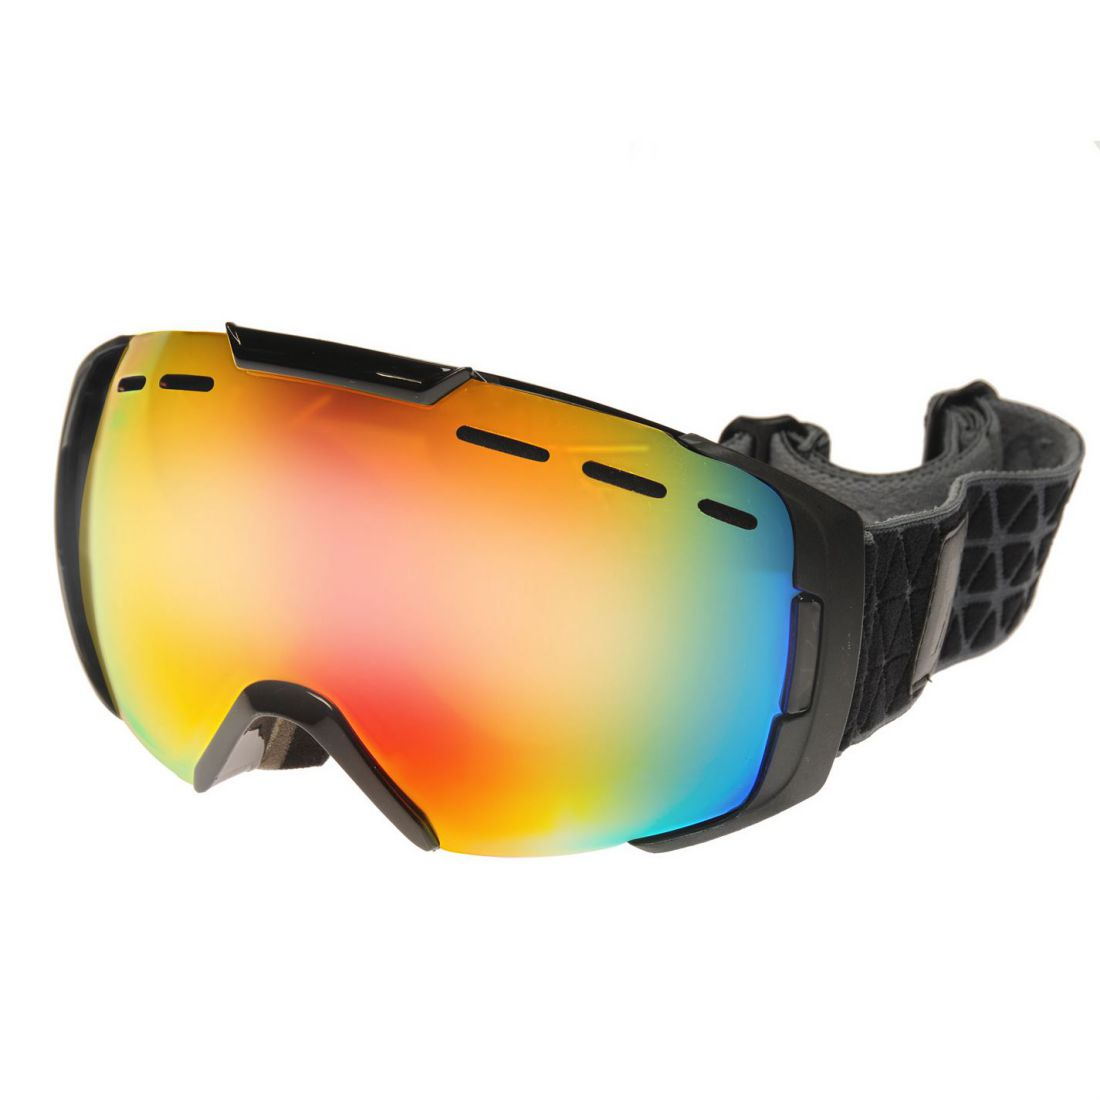 b7a4e3eacd7 Details about Nevica Whistler Skin Goggles Mens Gents Ski Silicone Headstrap  Polarised